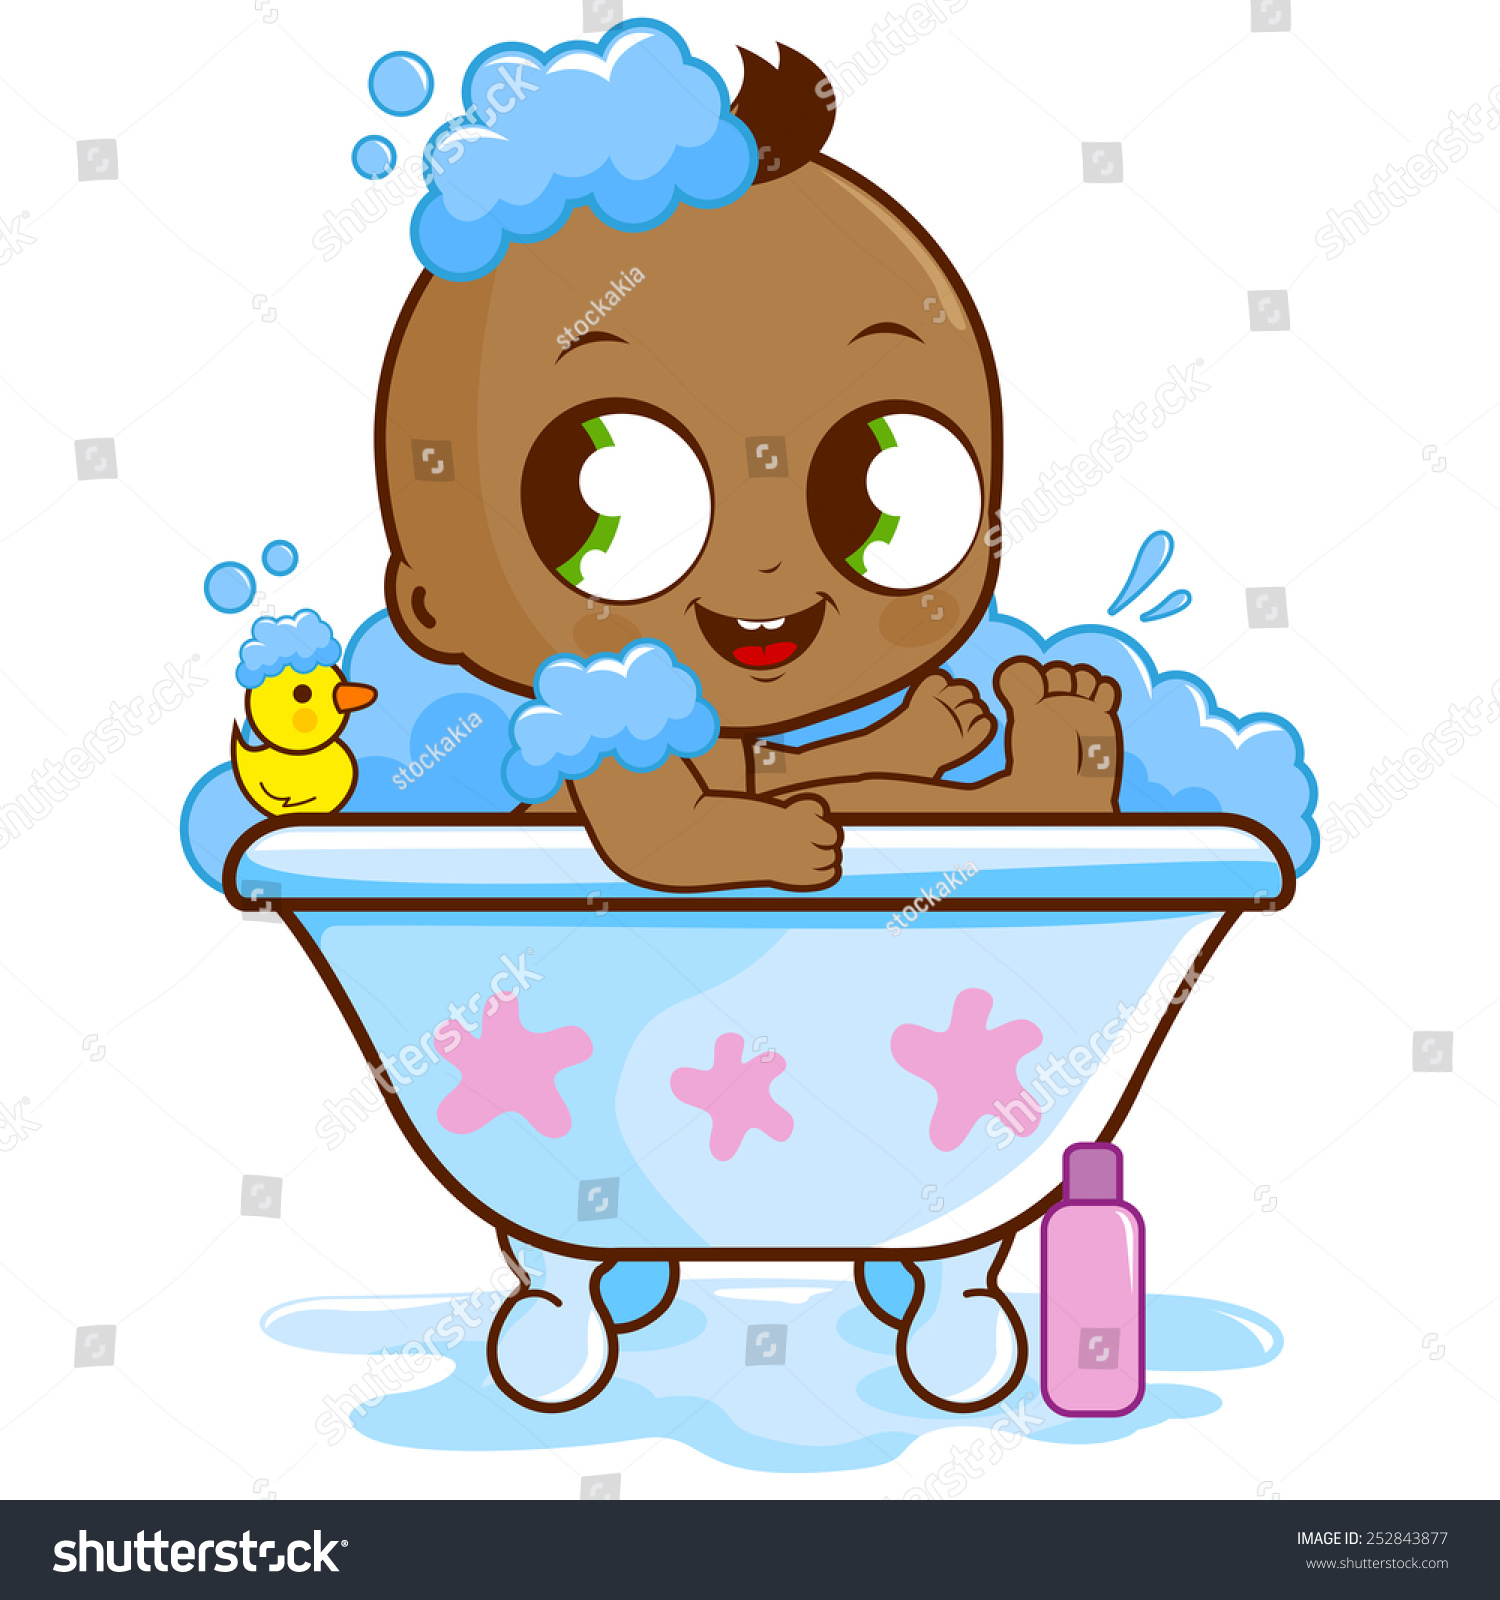 baby boy taking bath stock vector 252843877 shutterstock. Black Bedroom Furniture Sets. Home Design Ideas